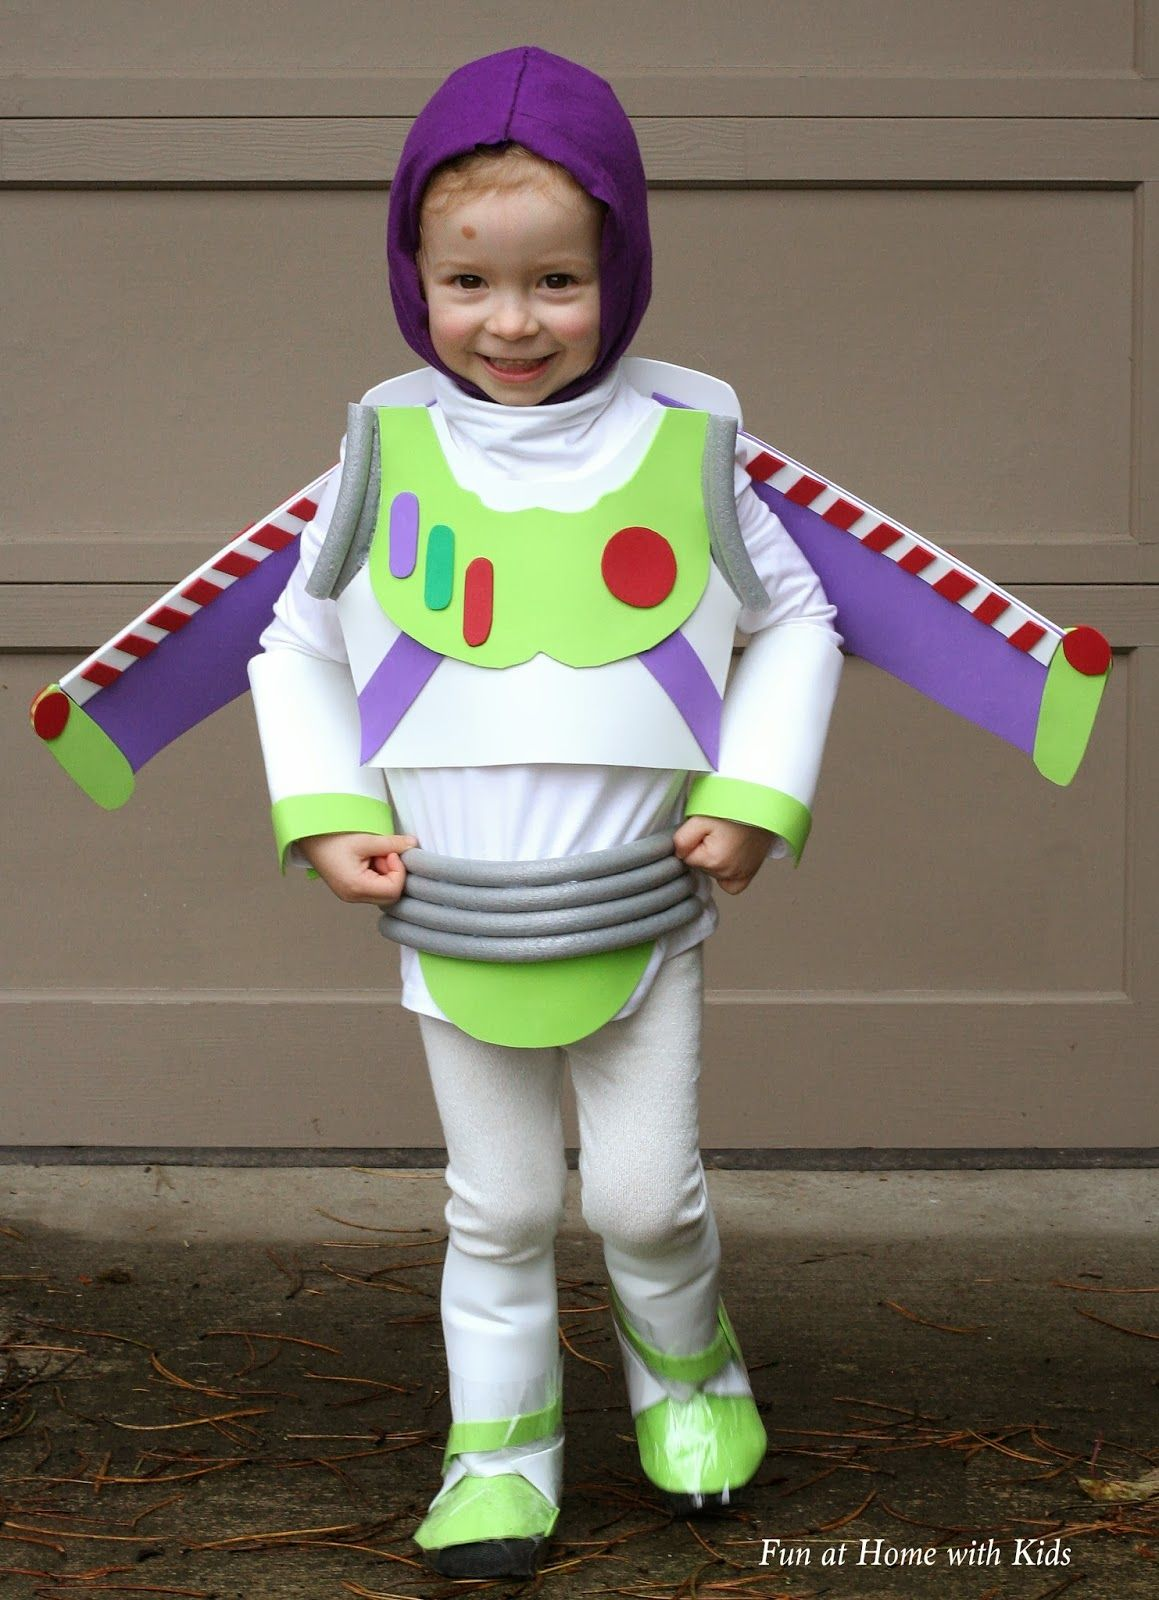 DIY Kids Buzz Lightyear No Sew Halloween Costume from Fun at Home with Kids  sc 1 st  Pinterest & DIY Kids Buzz Lightyear No Sew Halloween Costume | Pinterest | Buzz ...